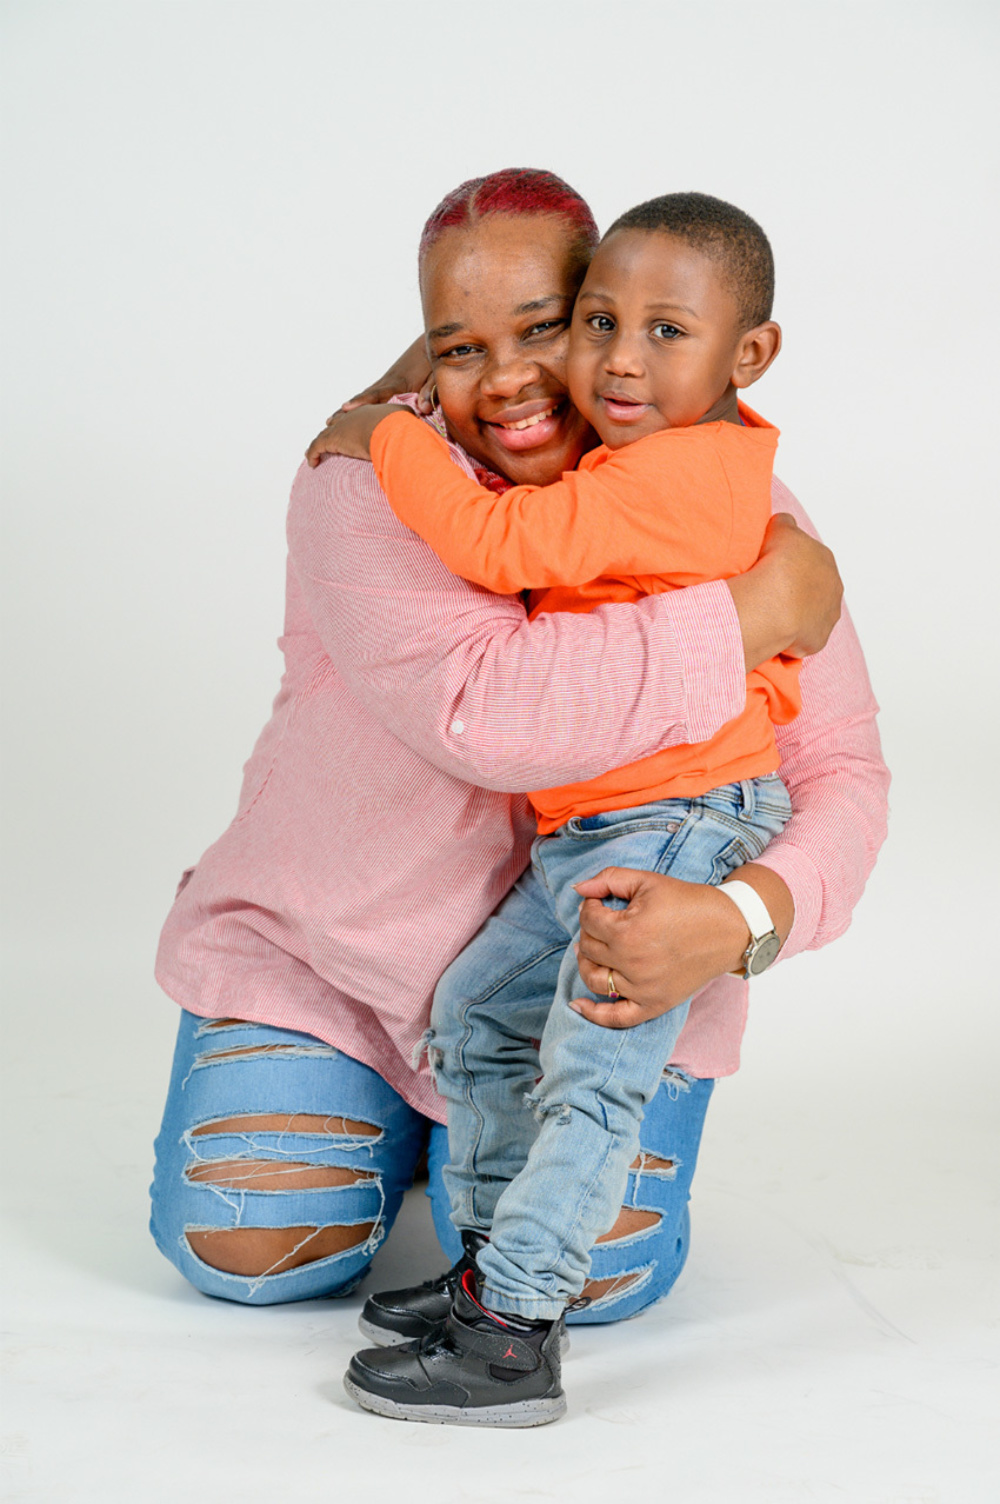 A young child hugging his mother in front of a plain white background